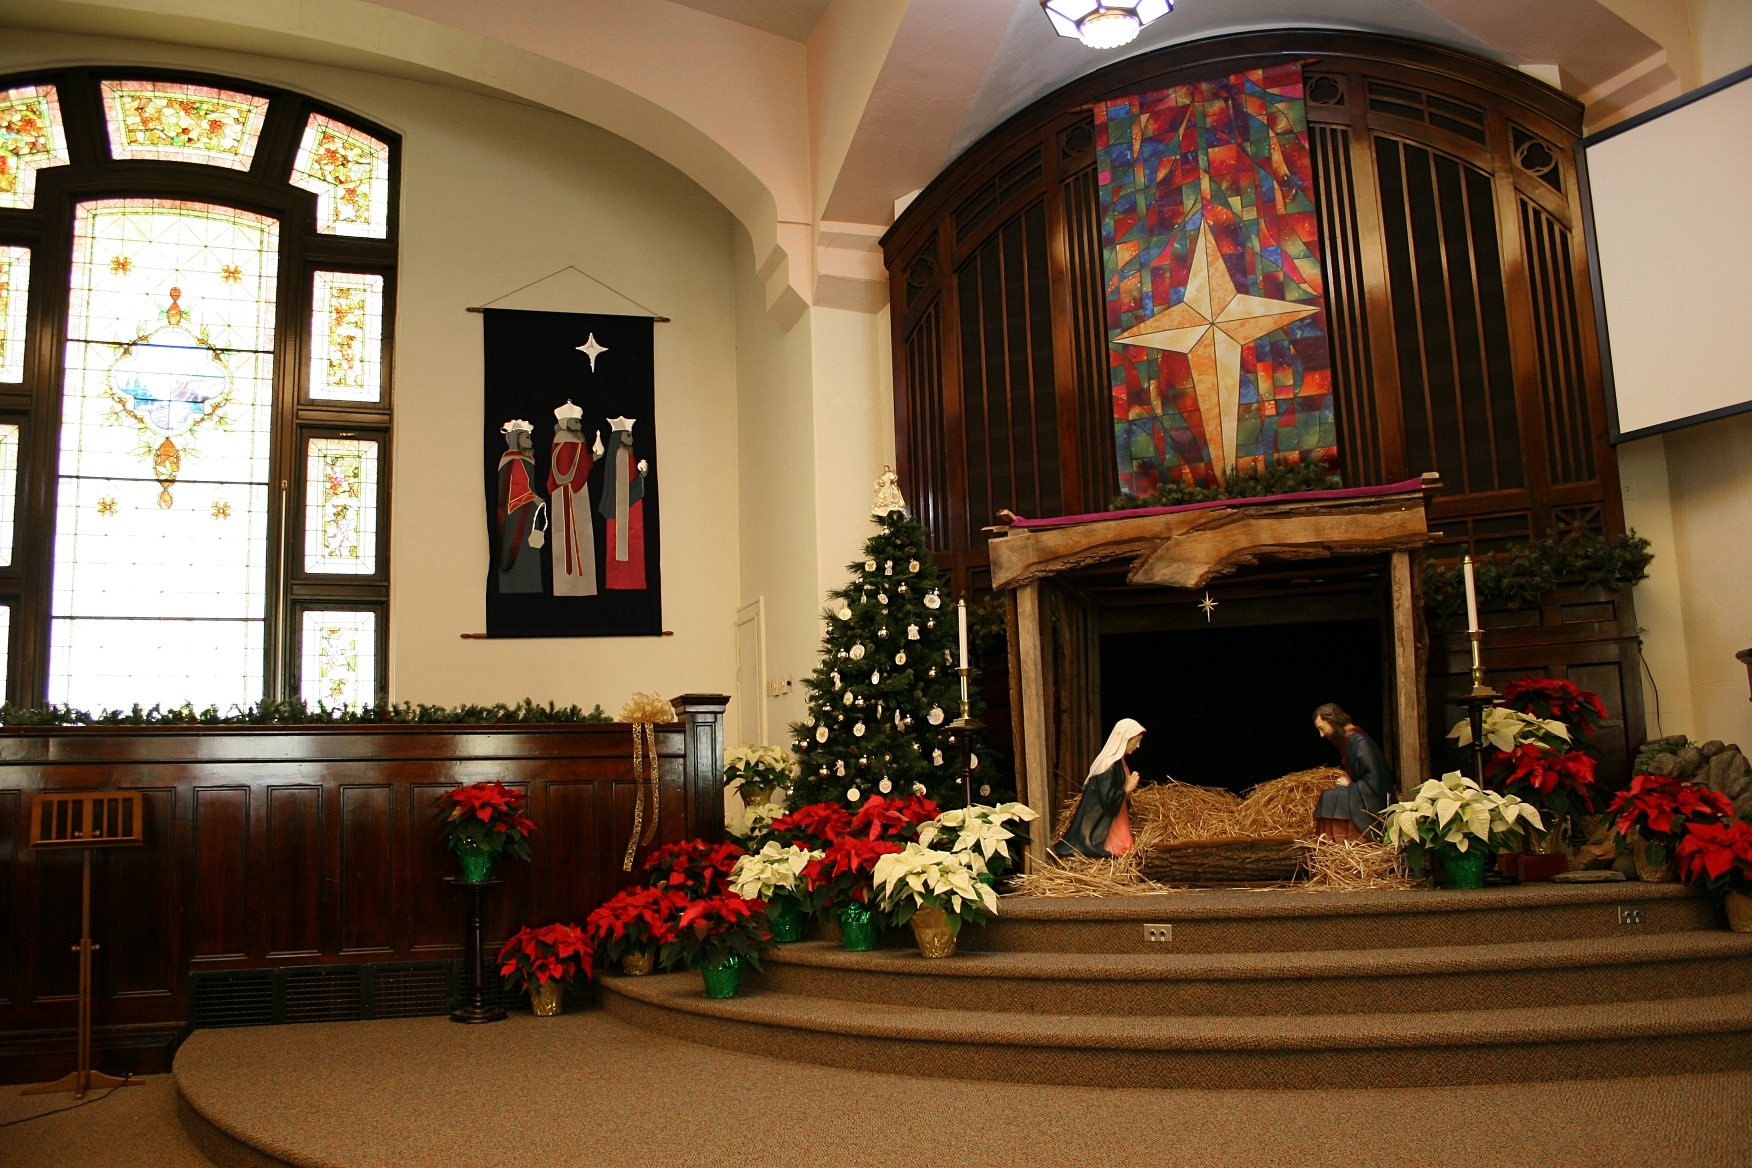 Focusing on the altar area and the eastern stained glass window.